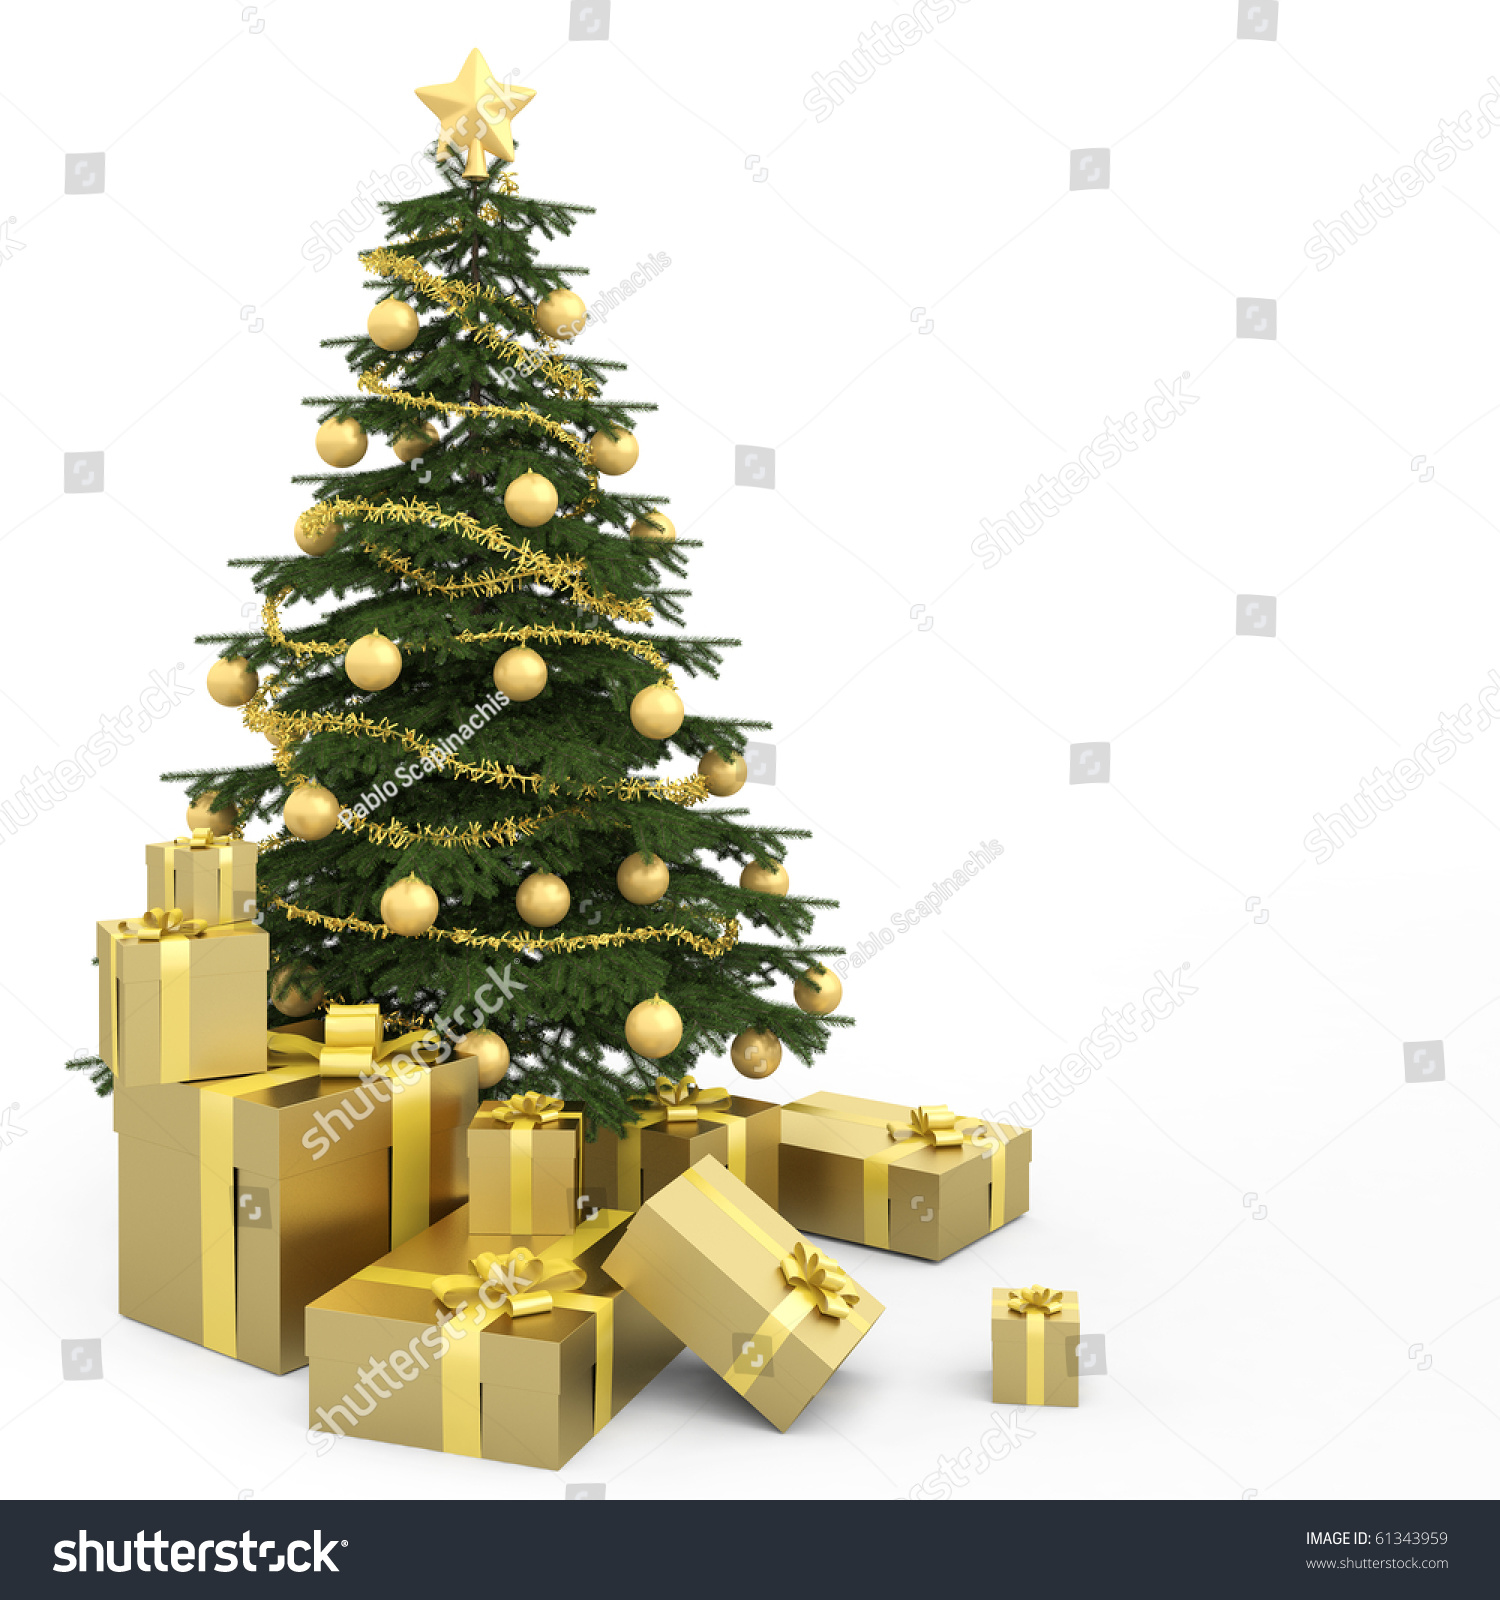 Real christmas trees with presents - Golden Decorated Christmas Tree Wirh Many Presents And Isolated On White